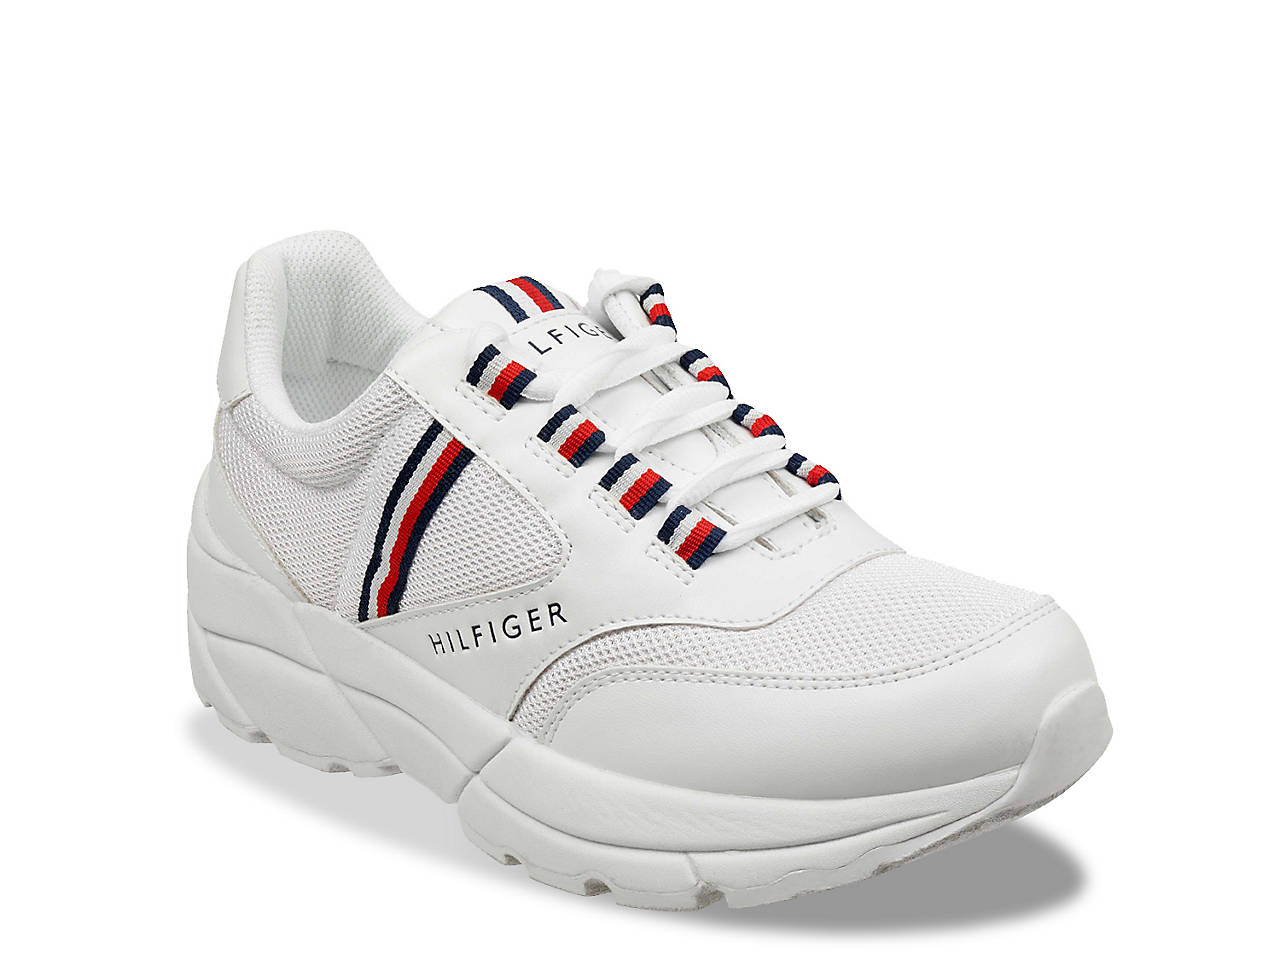 8a847e5c1929 Tommy Hilfiger Ernie Sneaker Women s Shoes